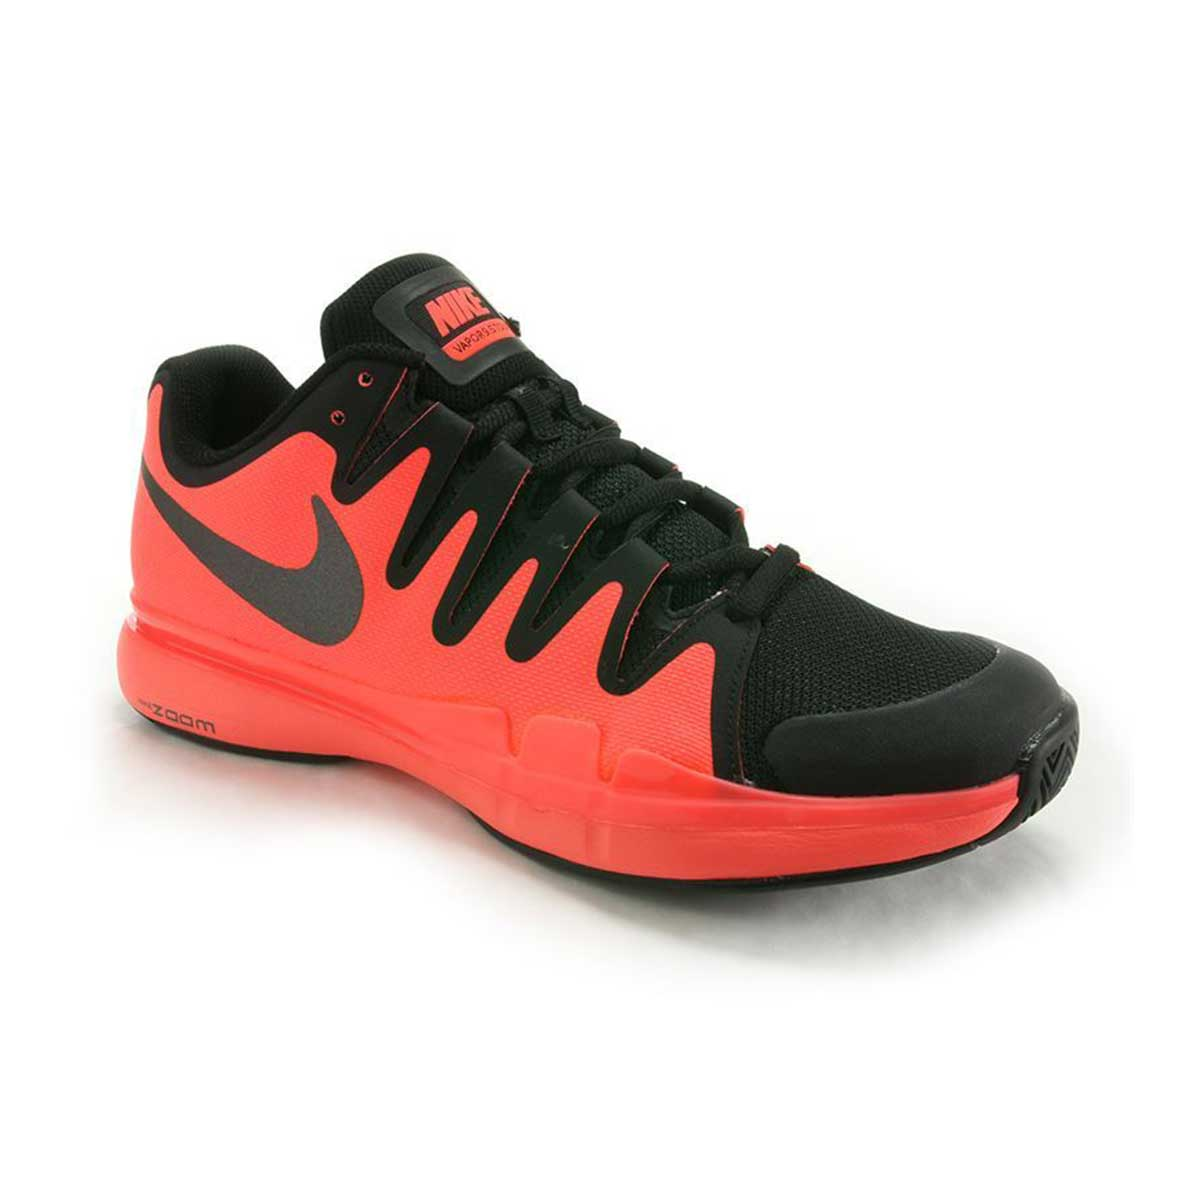 Tennis Shoes, Tennis, Sports, Buy, Nike, Nike Zoom Vapor 9.5 Tour Tennis  Shoes